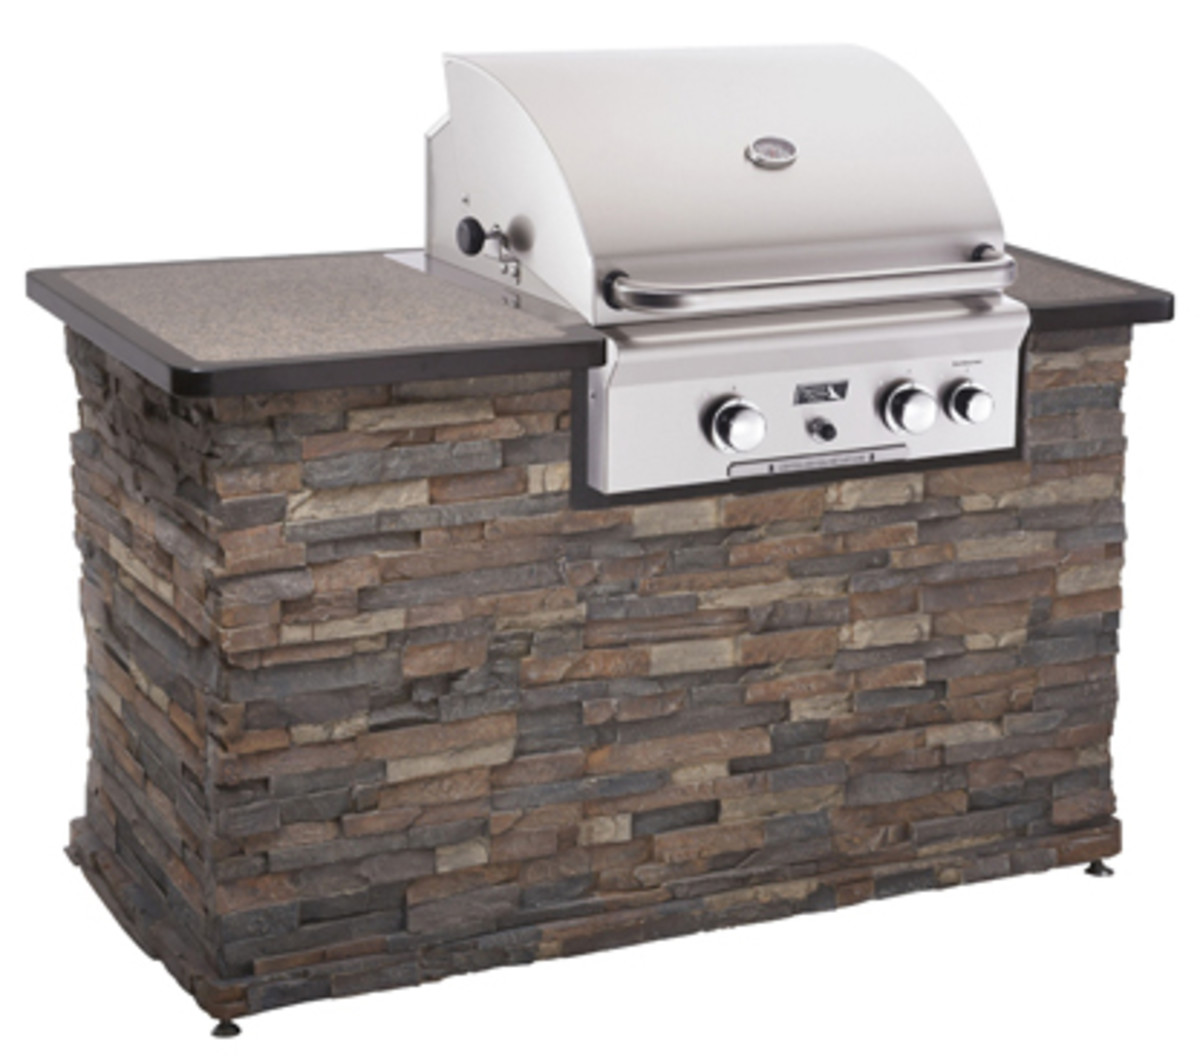 American outdoor 24 inch grill built into an outdoor kitchen.